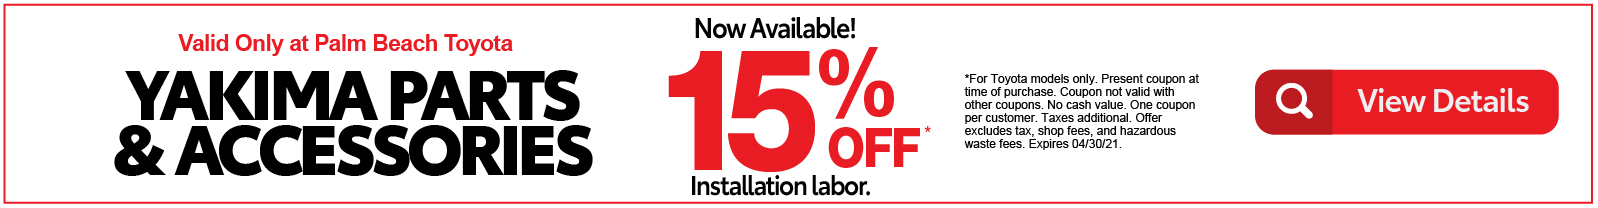 Valid only at Palm Beach Toyota Yakima Parts & Accessories %15 off installation labor. Click for Details.